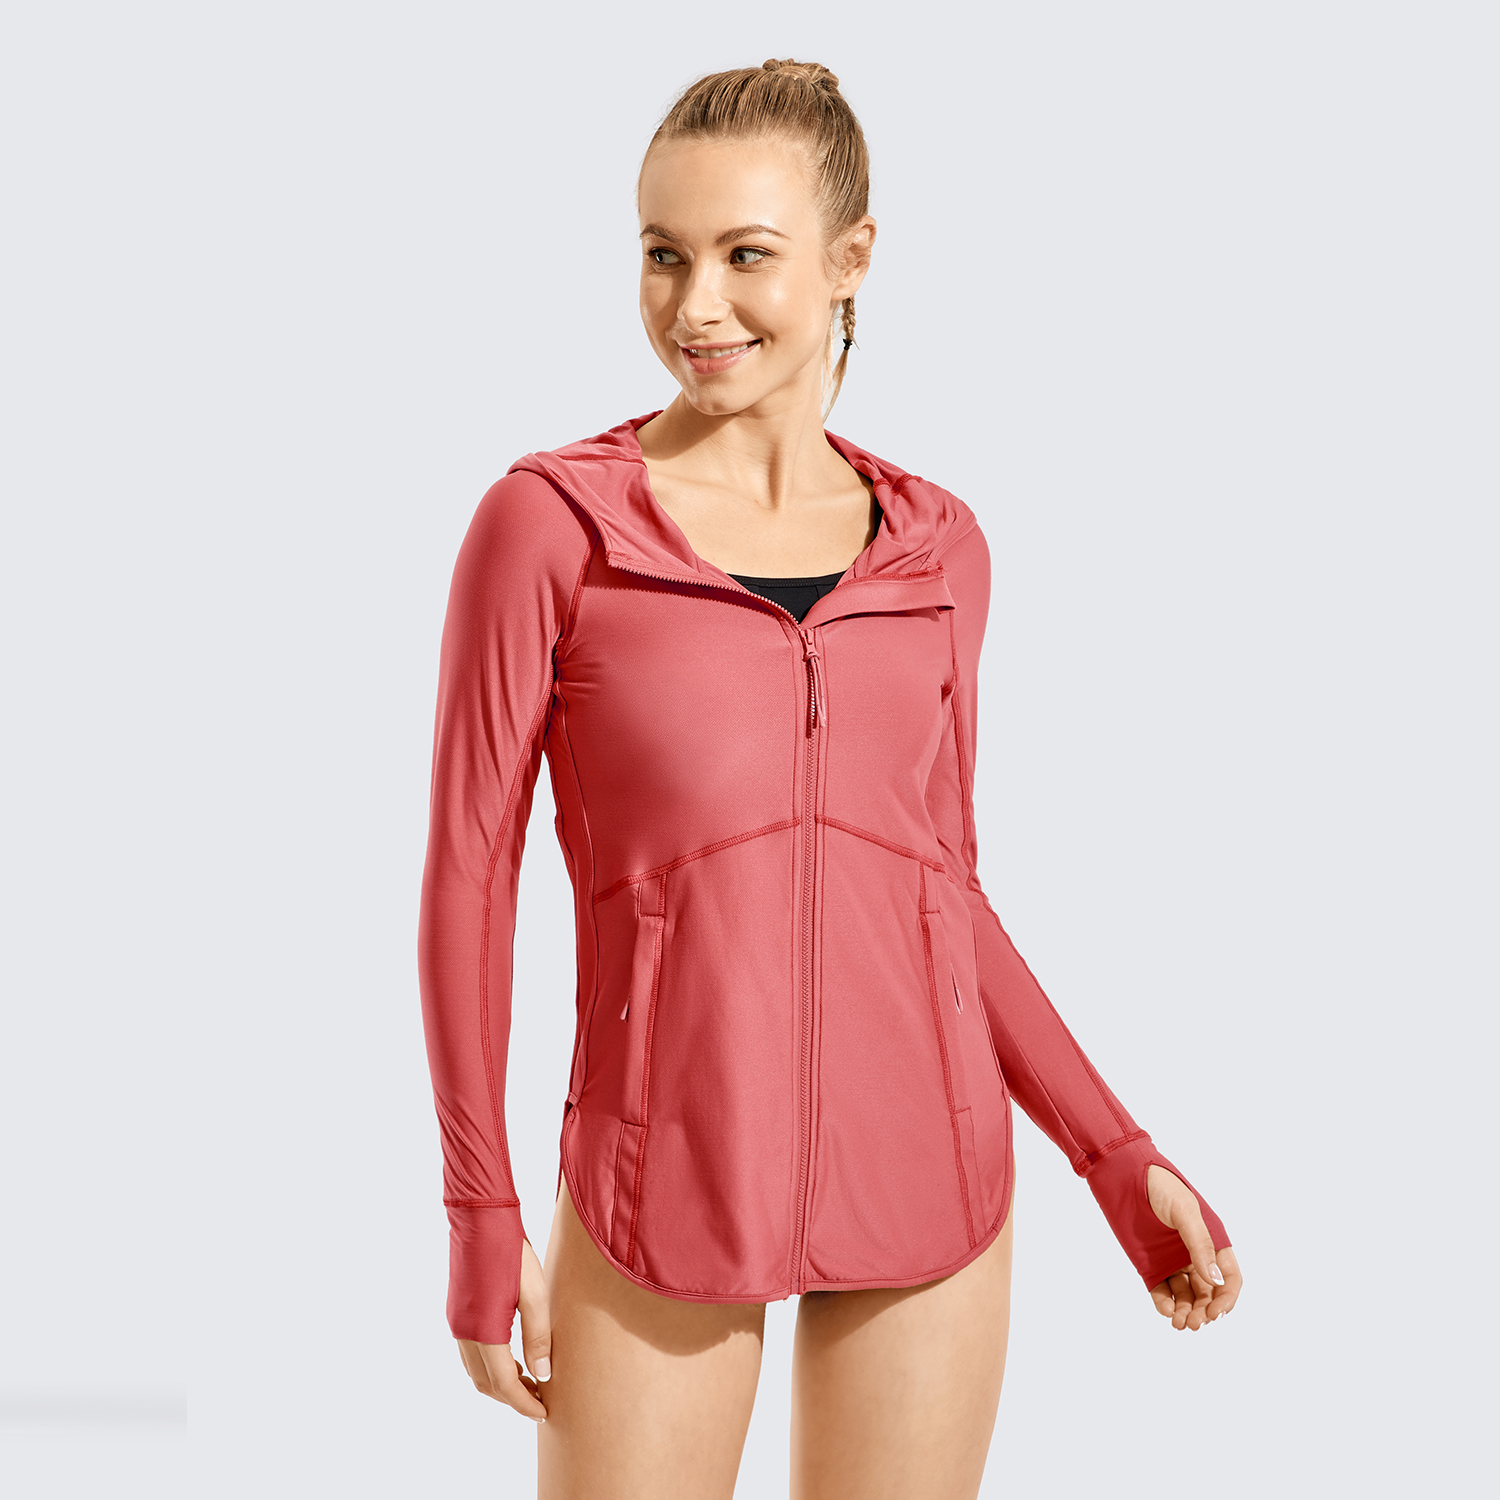 Mulher completo zip up hoodie mangas compridas workout topos praia maiô surf rash guard image